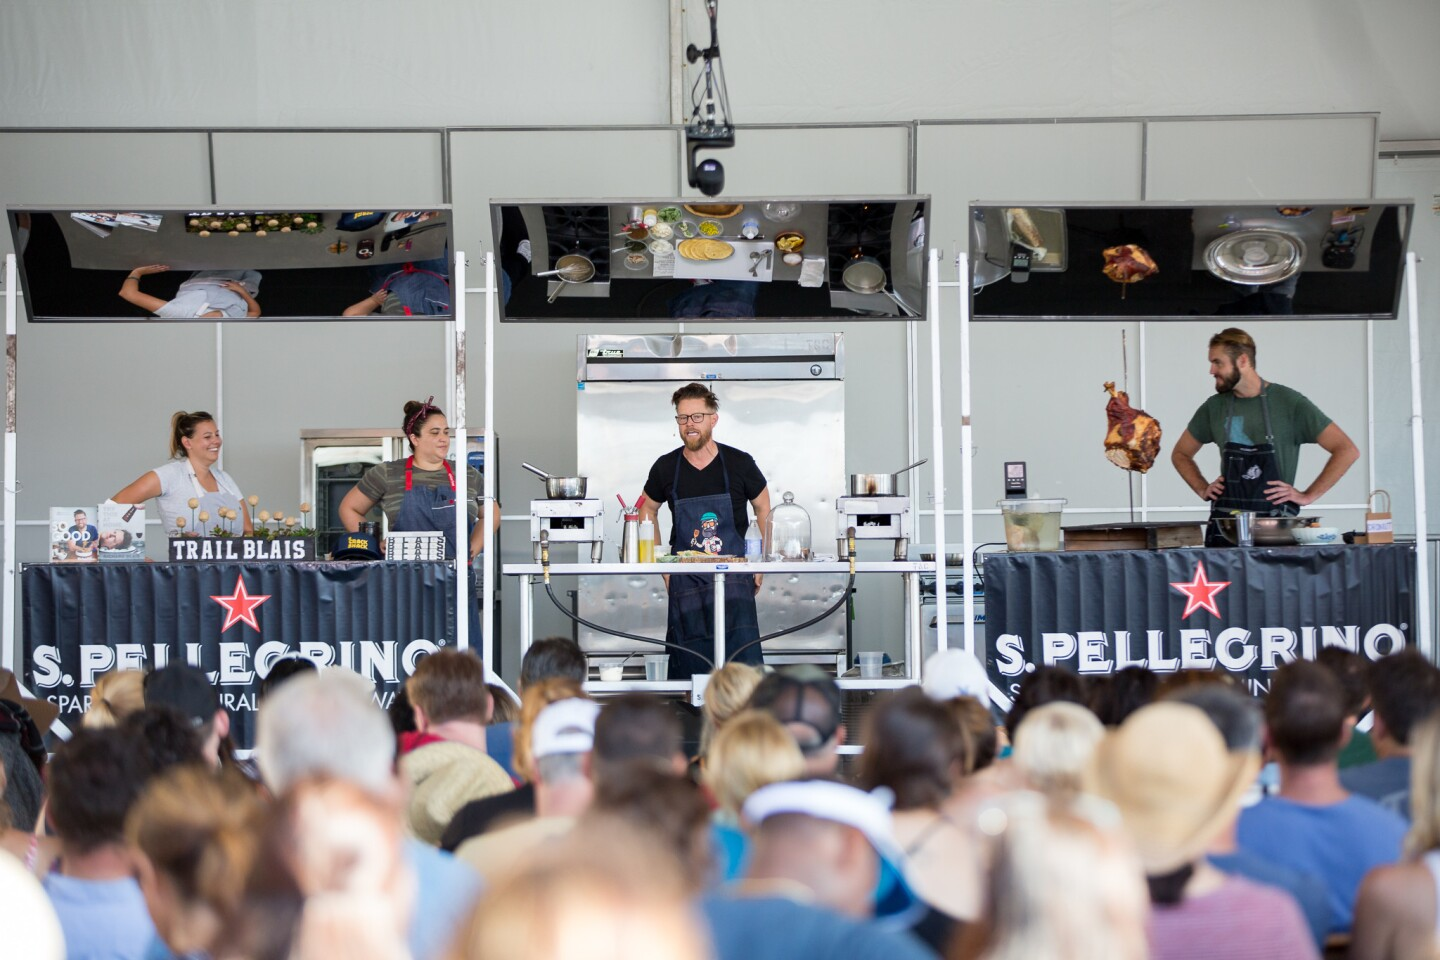 Day 1 of KAABOO Del Mar was filled with the likes of chef Richard Blais on the Palate stage and the festival's first sold-out crowd.